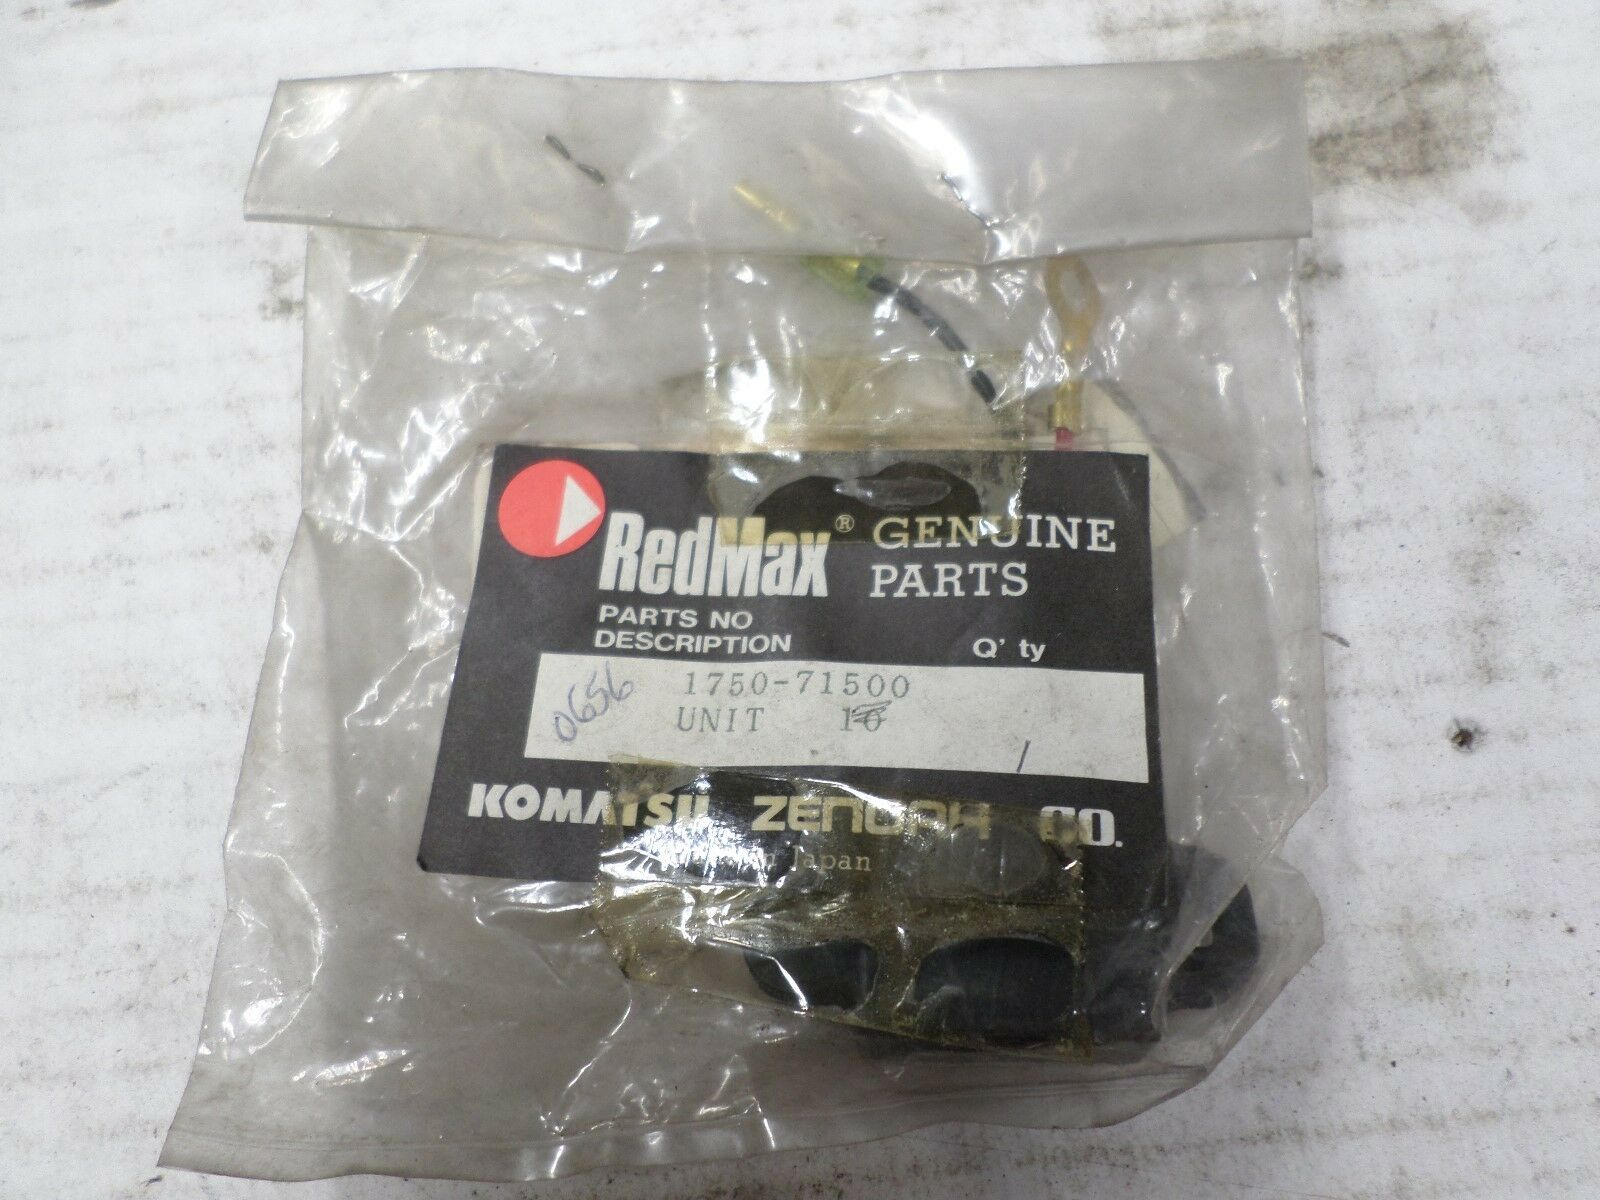 Genuine Nos Red Max Electronic Ignition Unit 516519601 175071500 Ebay Redmax Fuel Filter Norton Secured Powered By Verisign